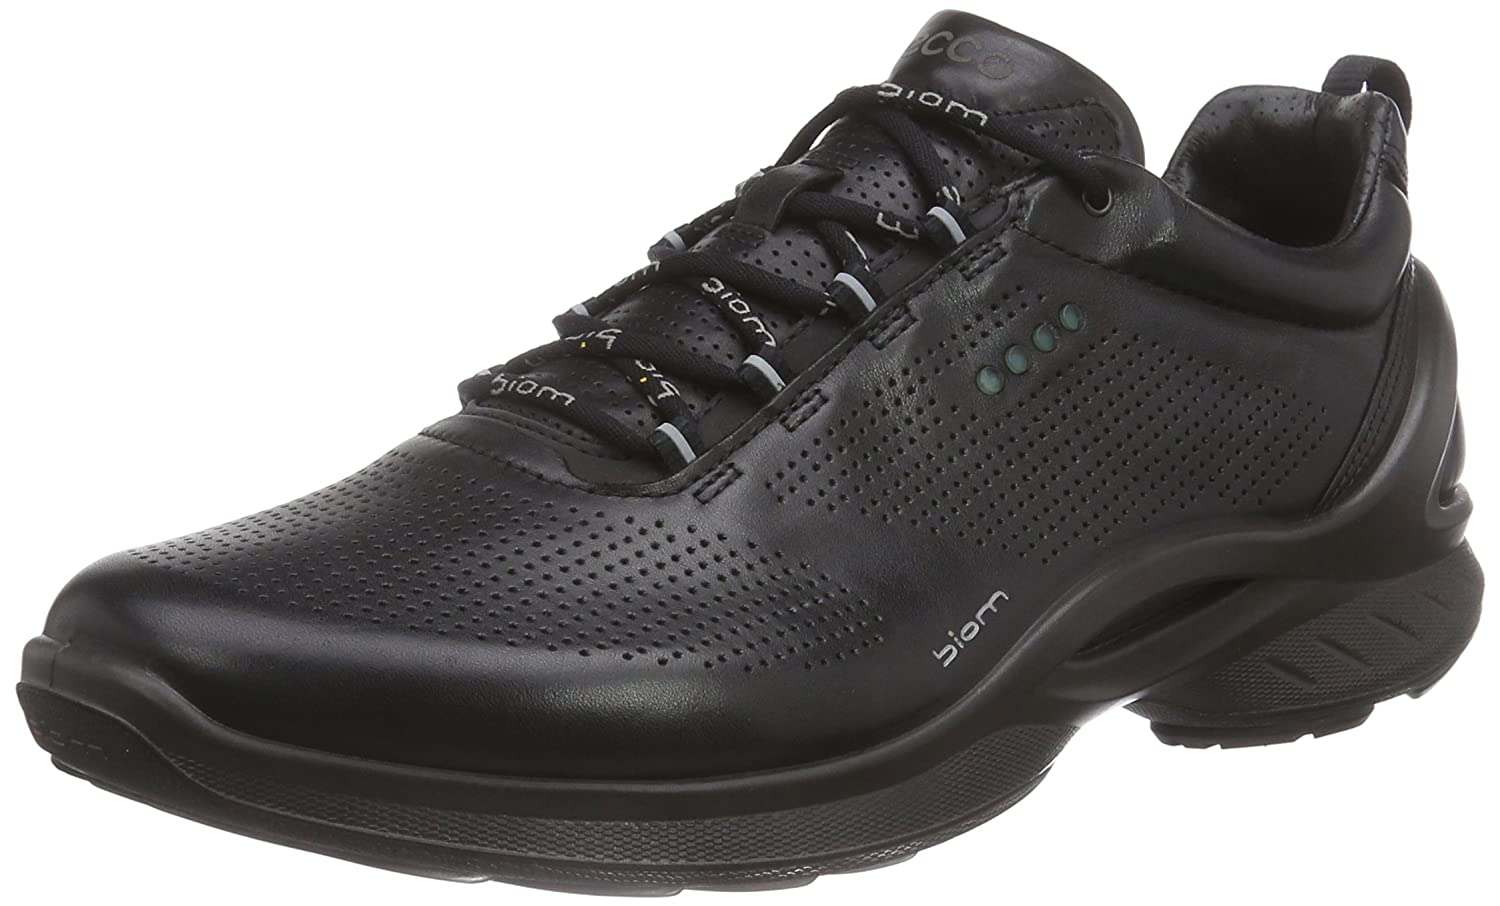 Where Are Ecco Shoes From